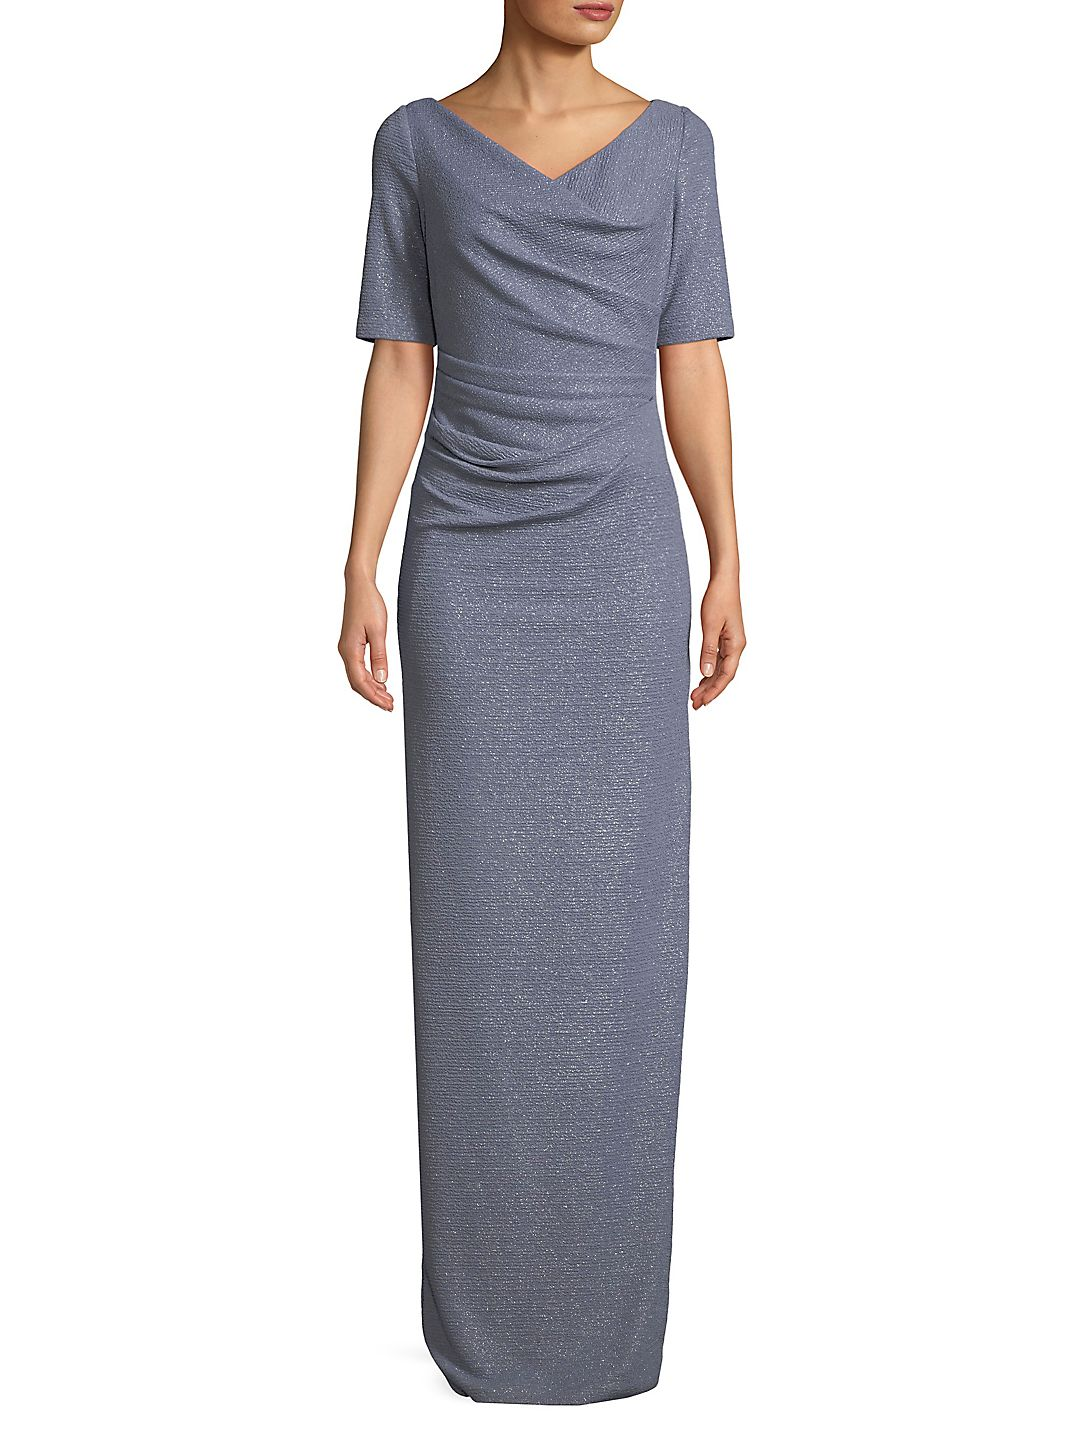 Ruched Metallic Knit Gown